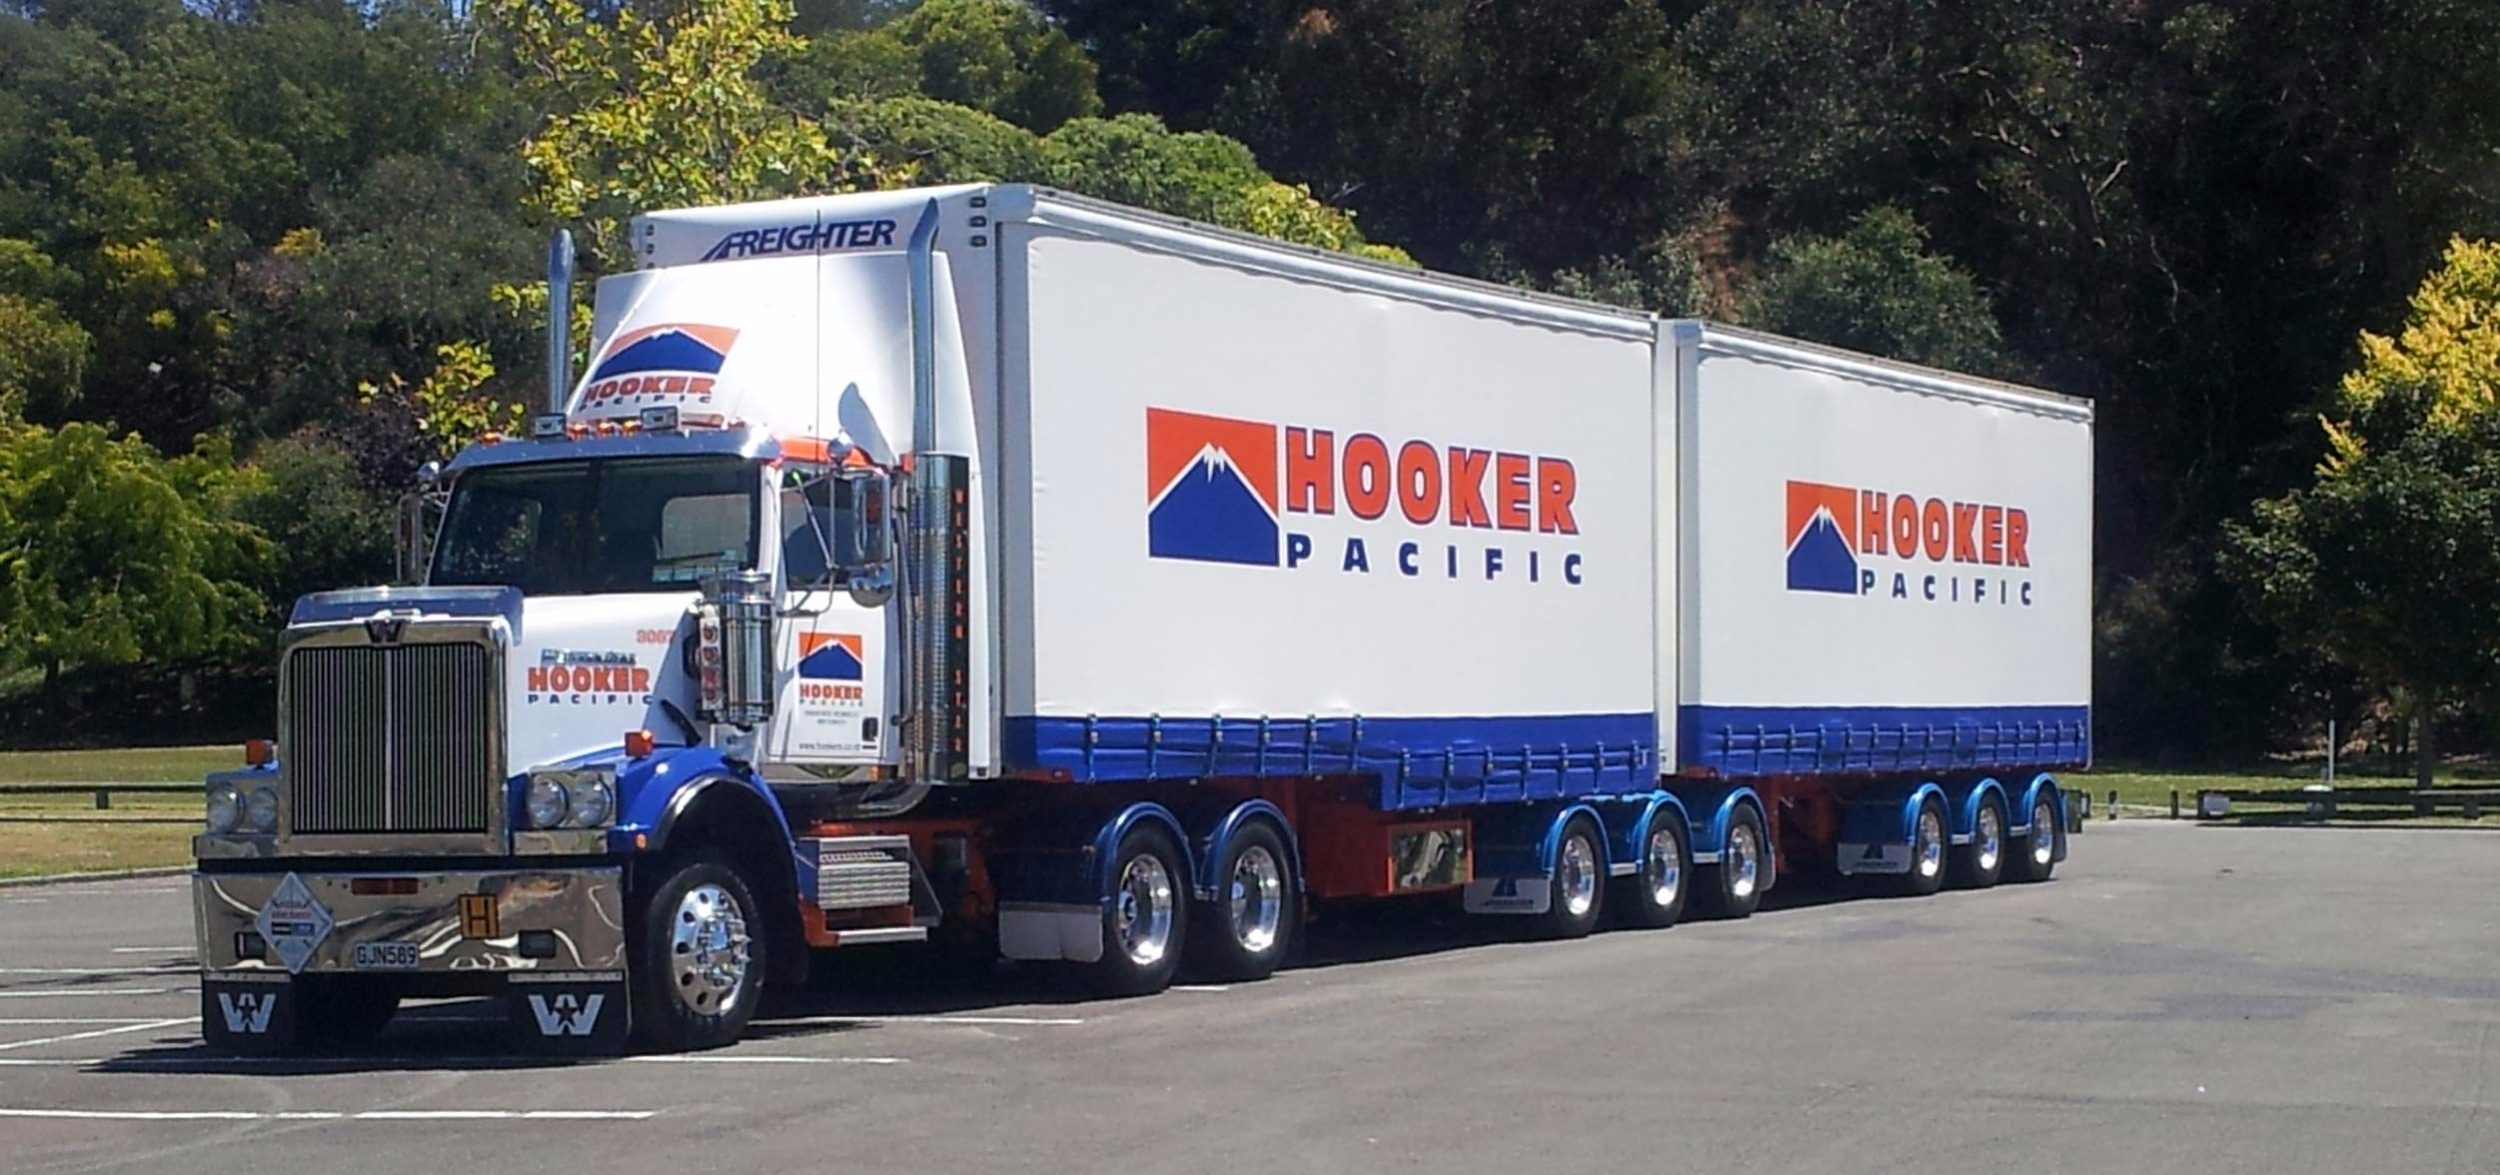 Hooker Pacific Removal Truck